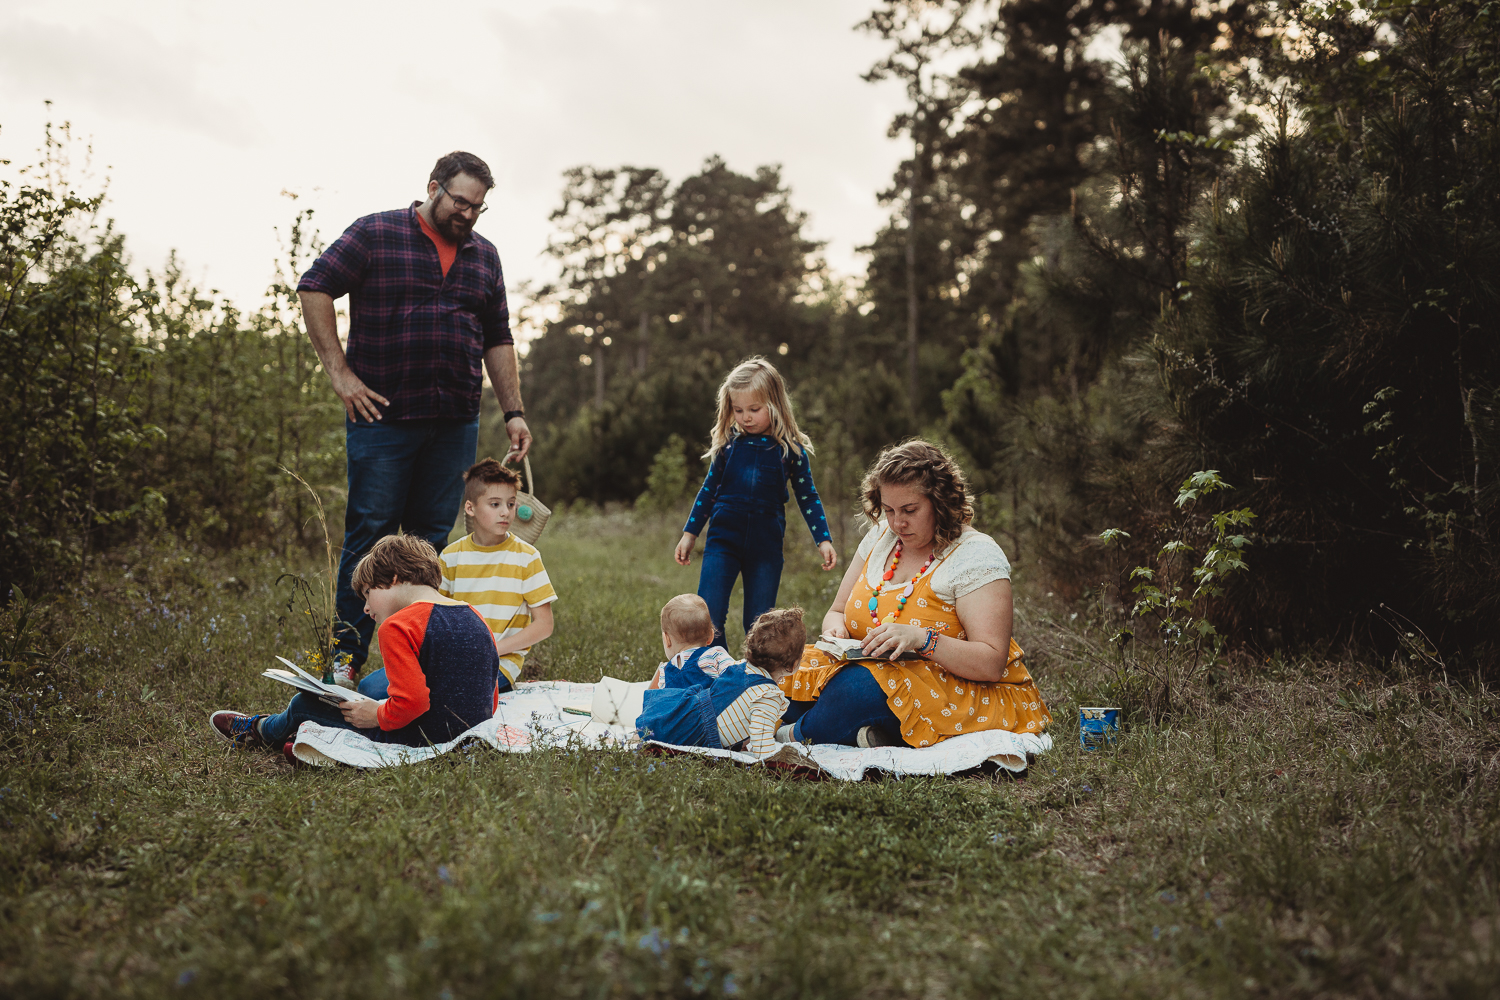 lifestyle-family-session-the-woodlands-photographer-106.jpg